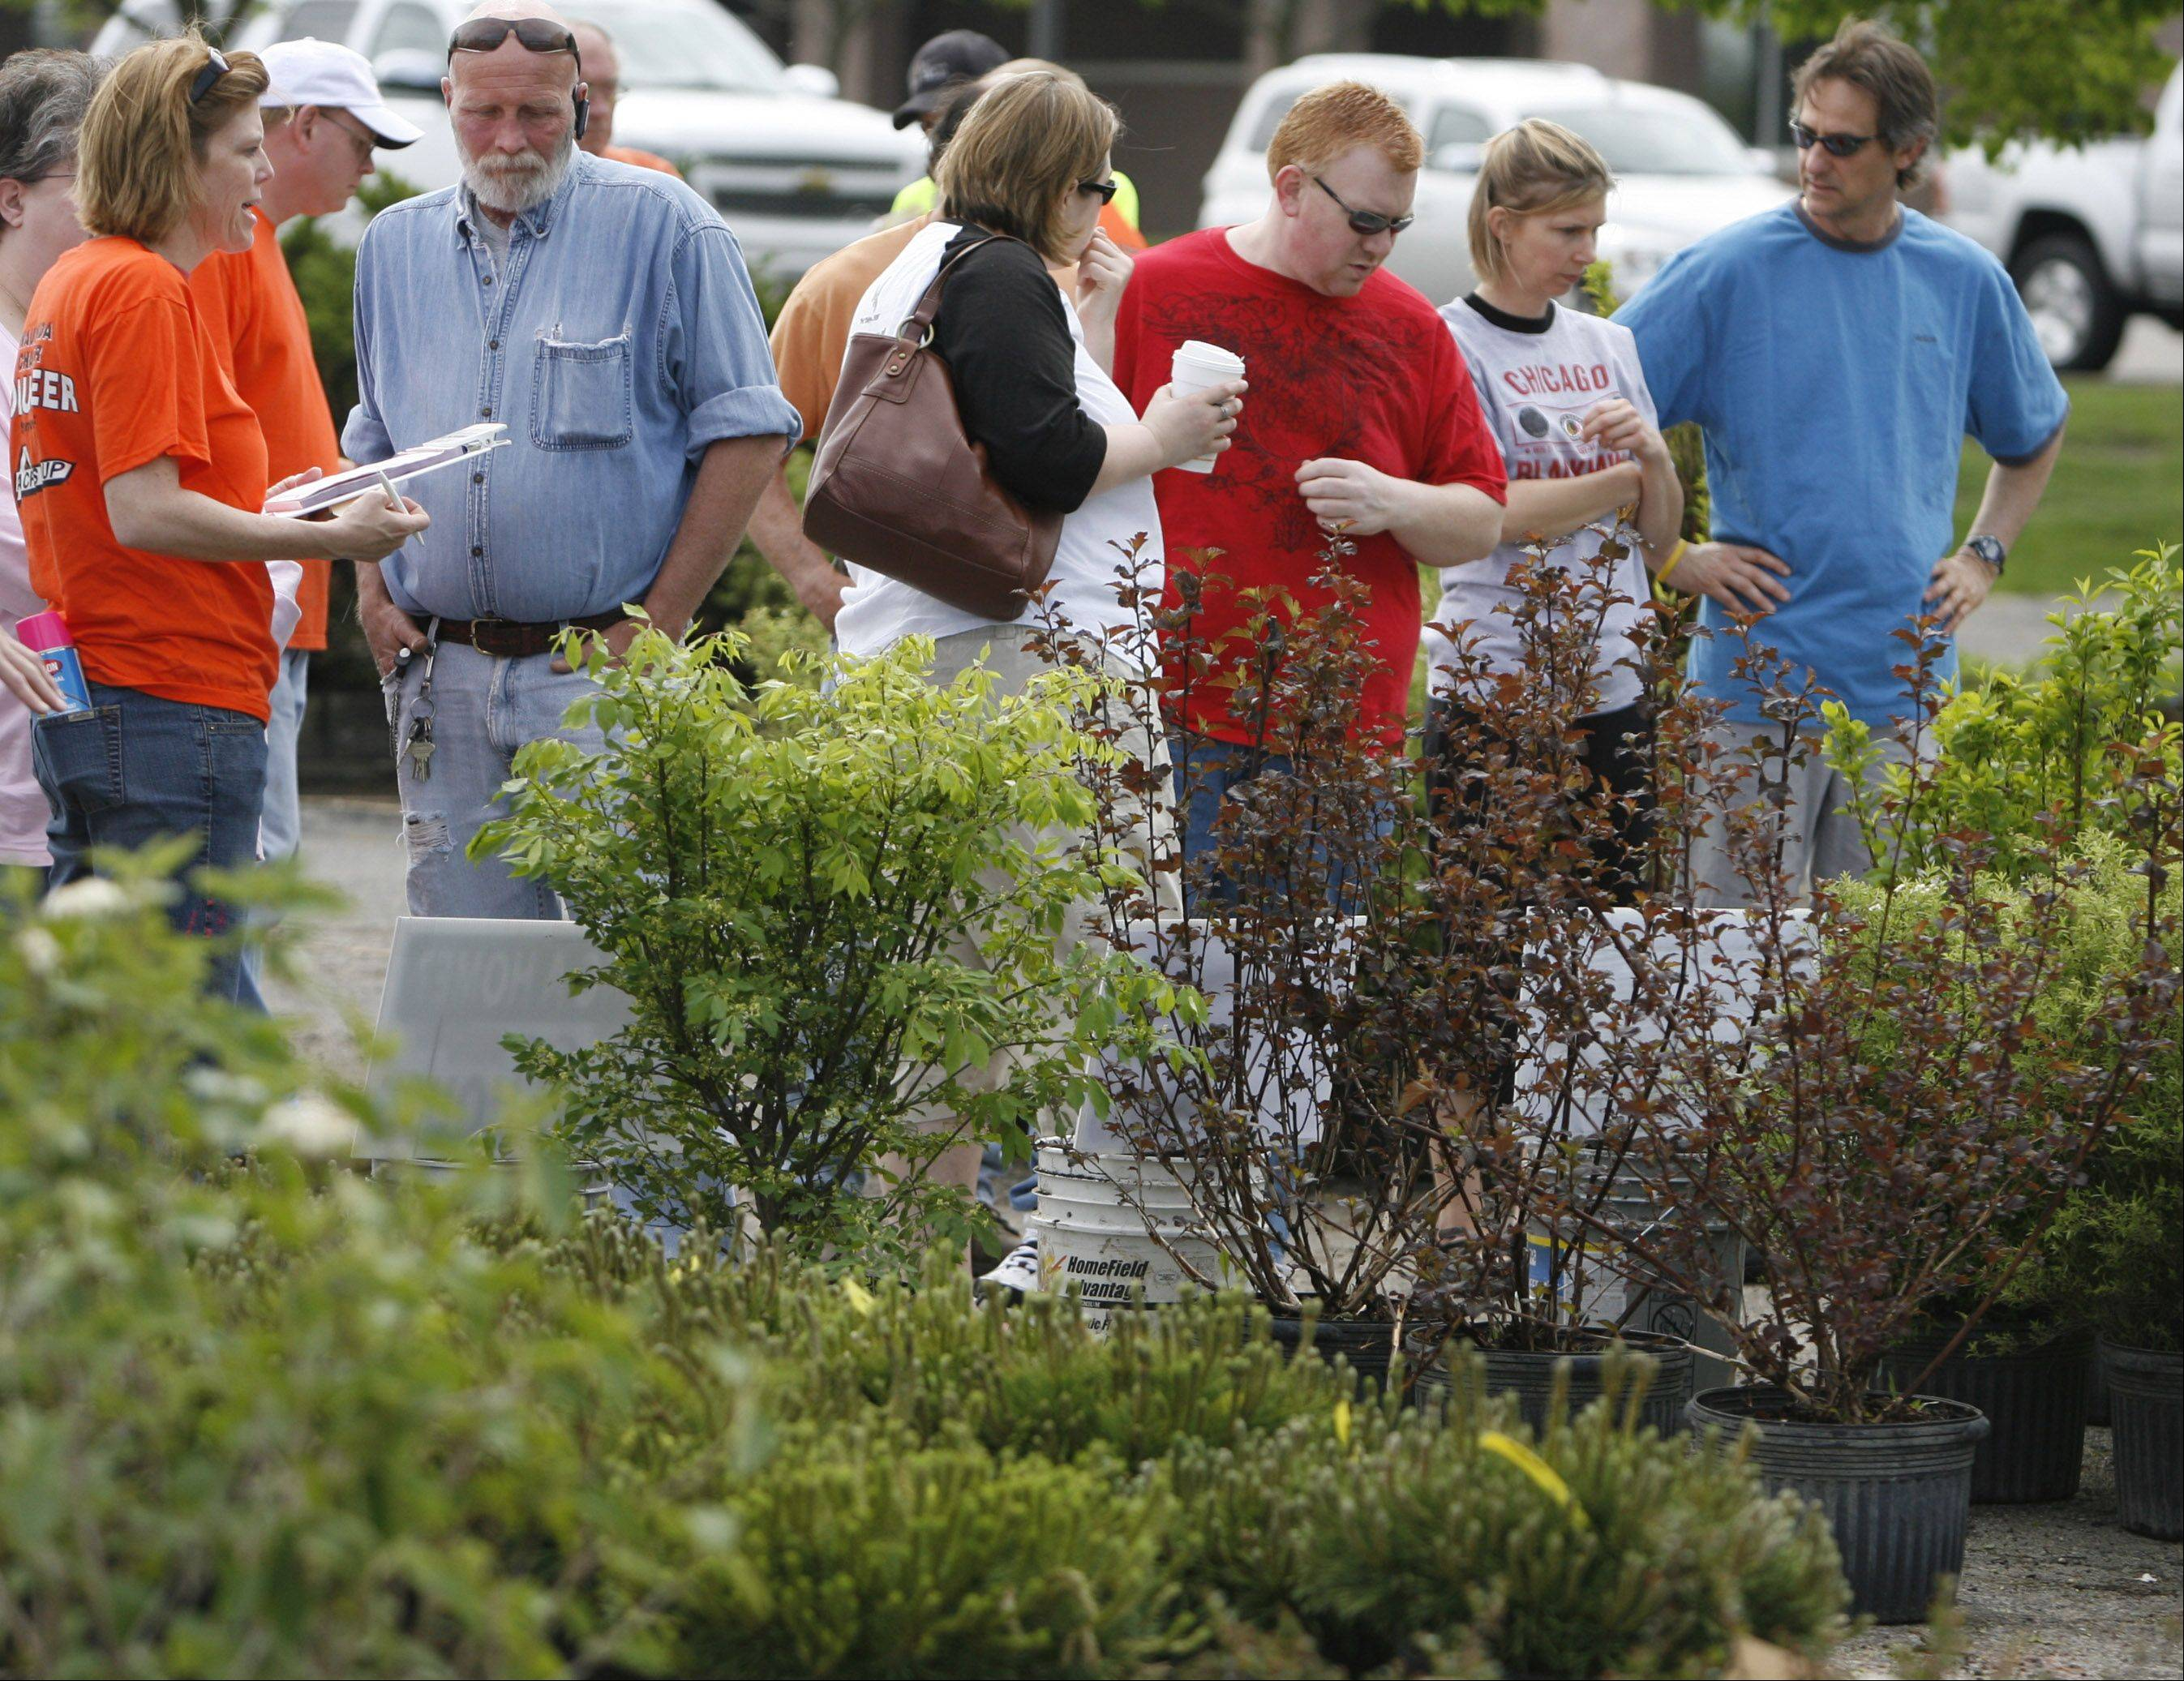 Shoppers look over the plants for sale at the fifth annual Wauconda Area Chamber of Commerce Tree and Shrub Sale in 2010. The next sale will take place from 9 a.m. to 2 p.m. Saturday, April 27, in the parking lot of Acres Group, 610 W. Liberty St., Wauconda.